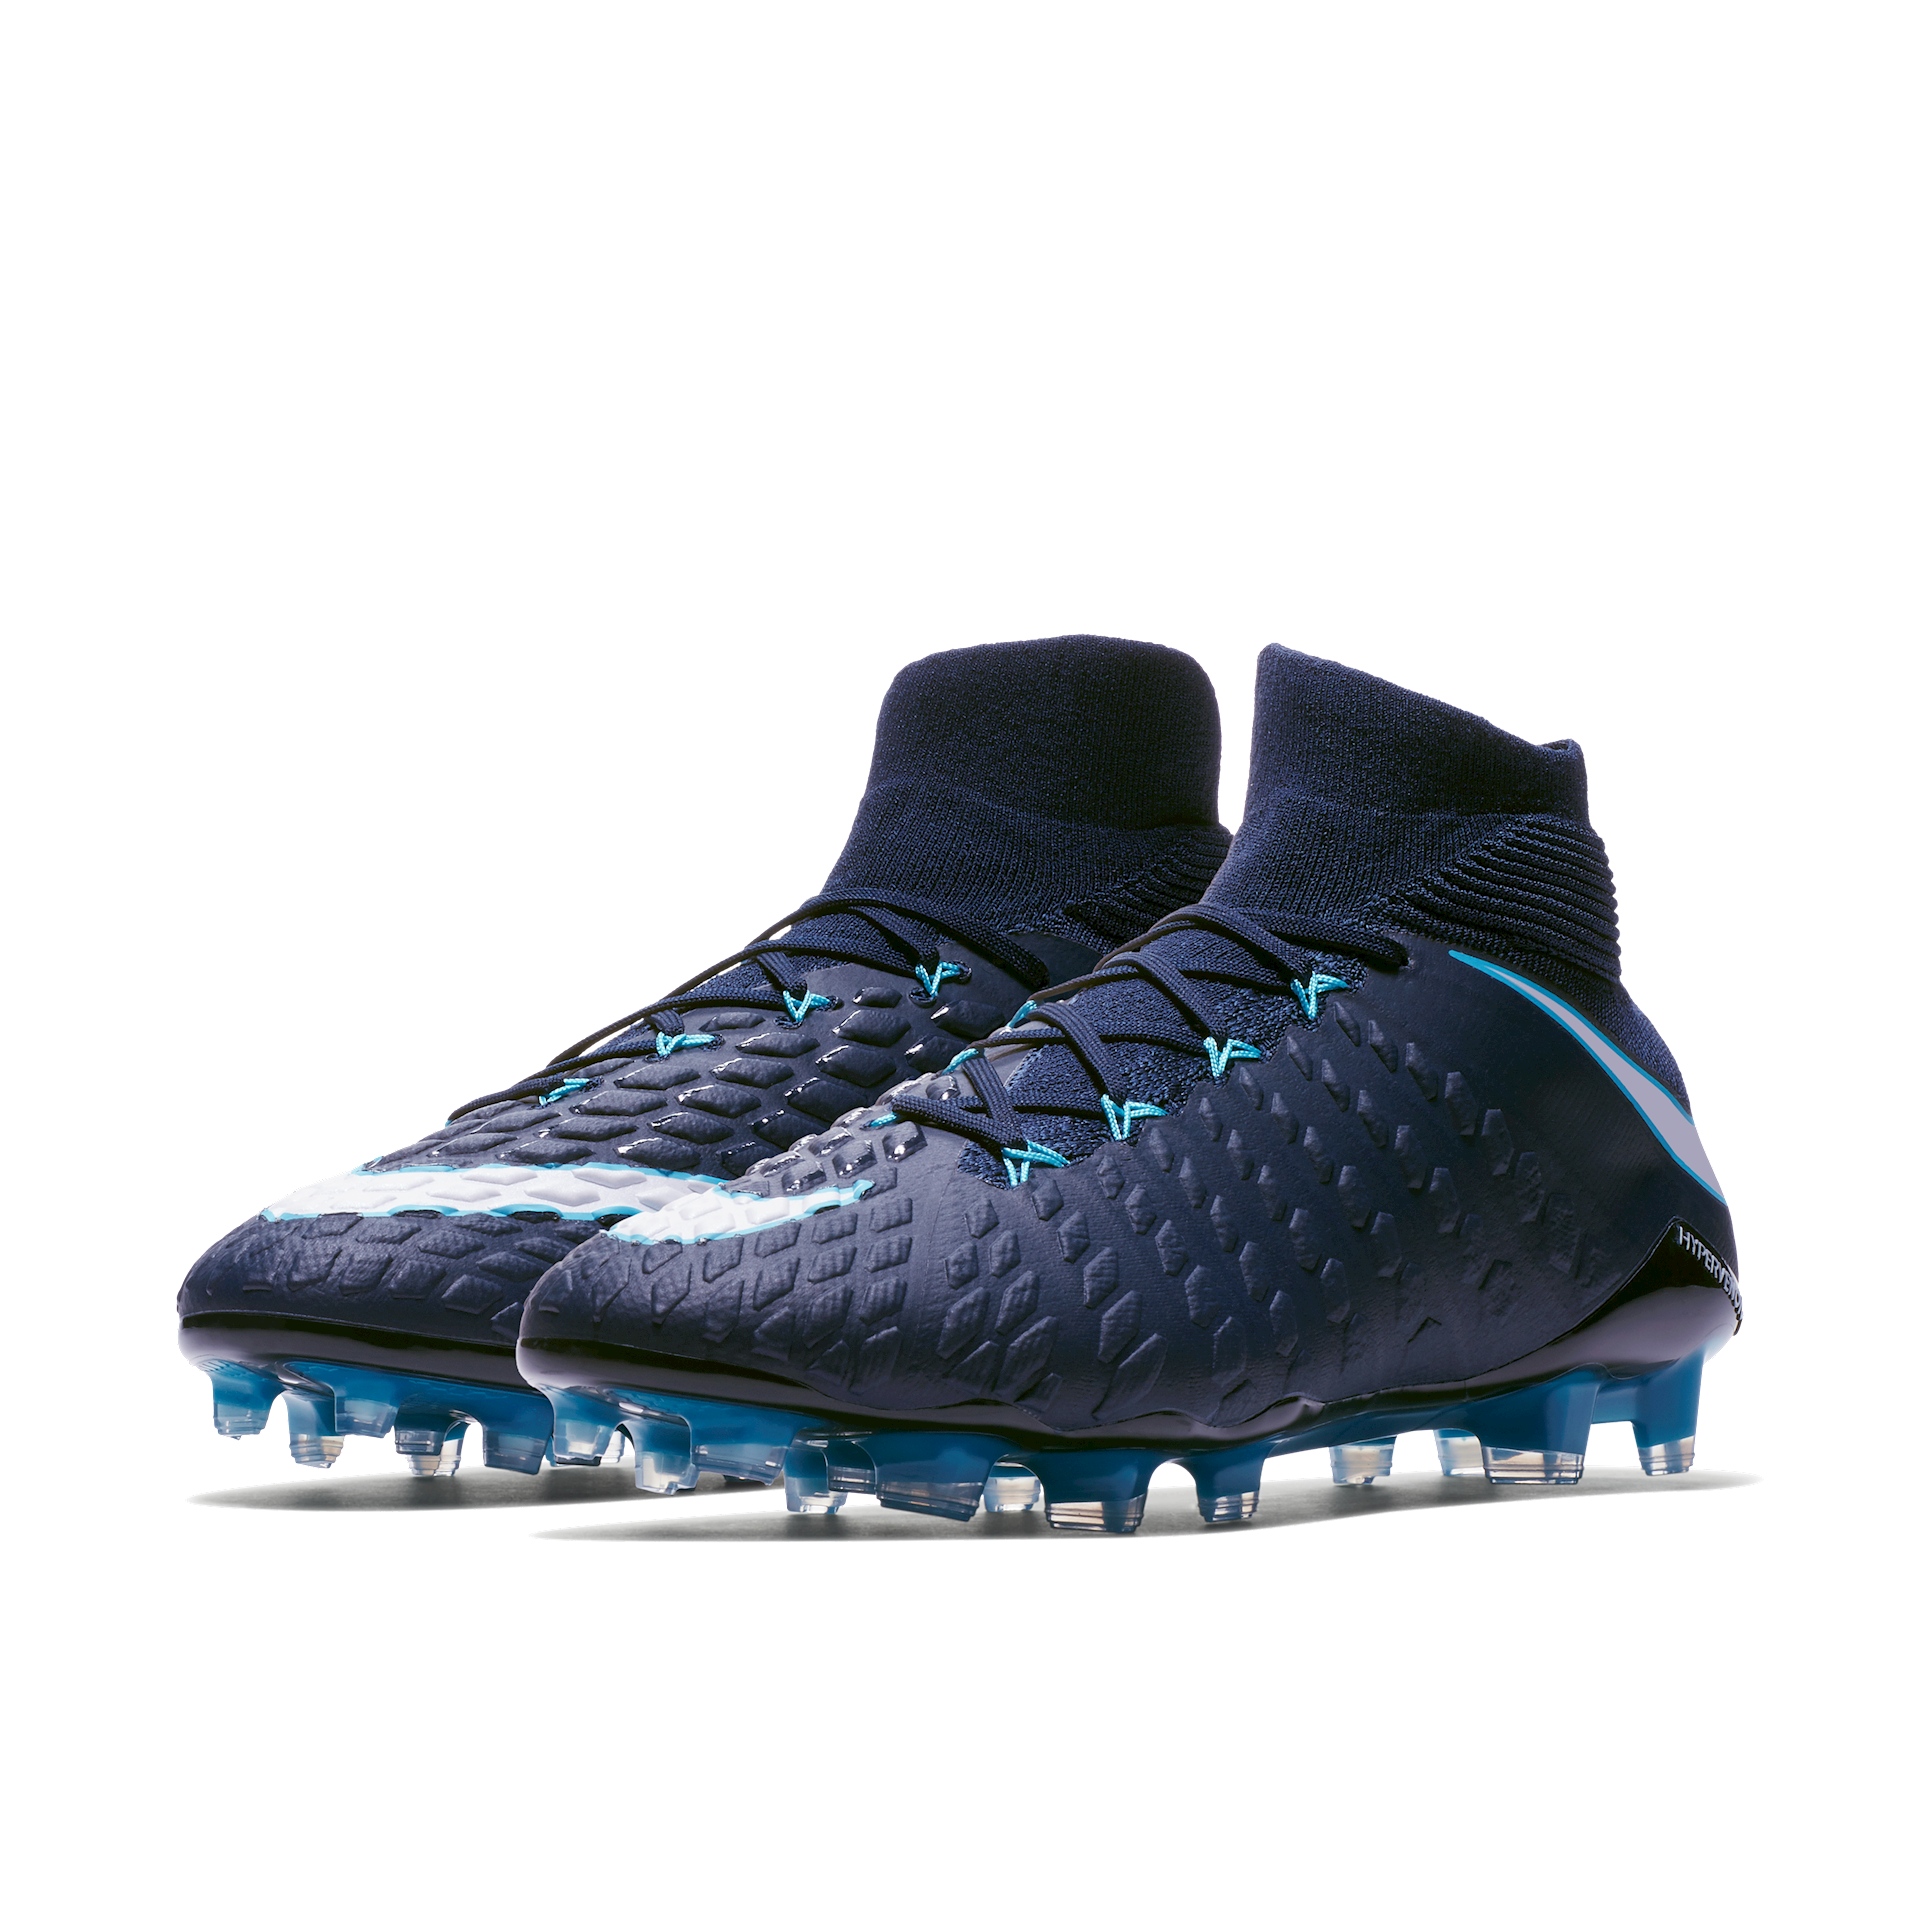 new product b27d2 8352f Design Nike Hypervenom Phantom III PLAY ICE voetbalschoenen